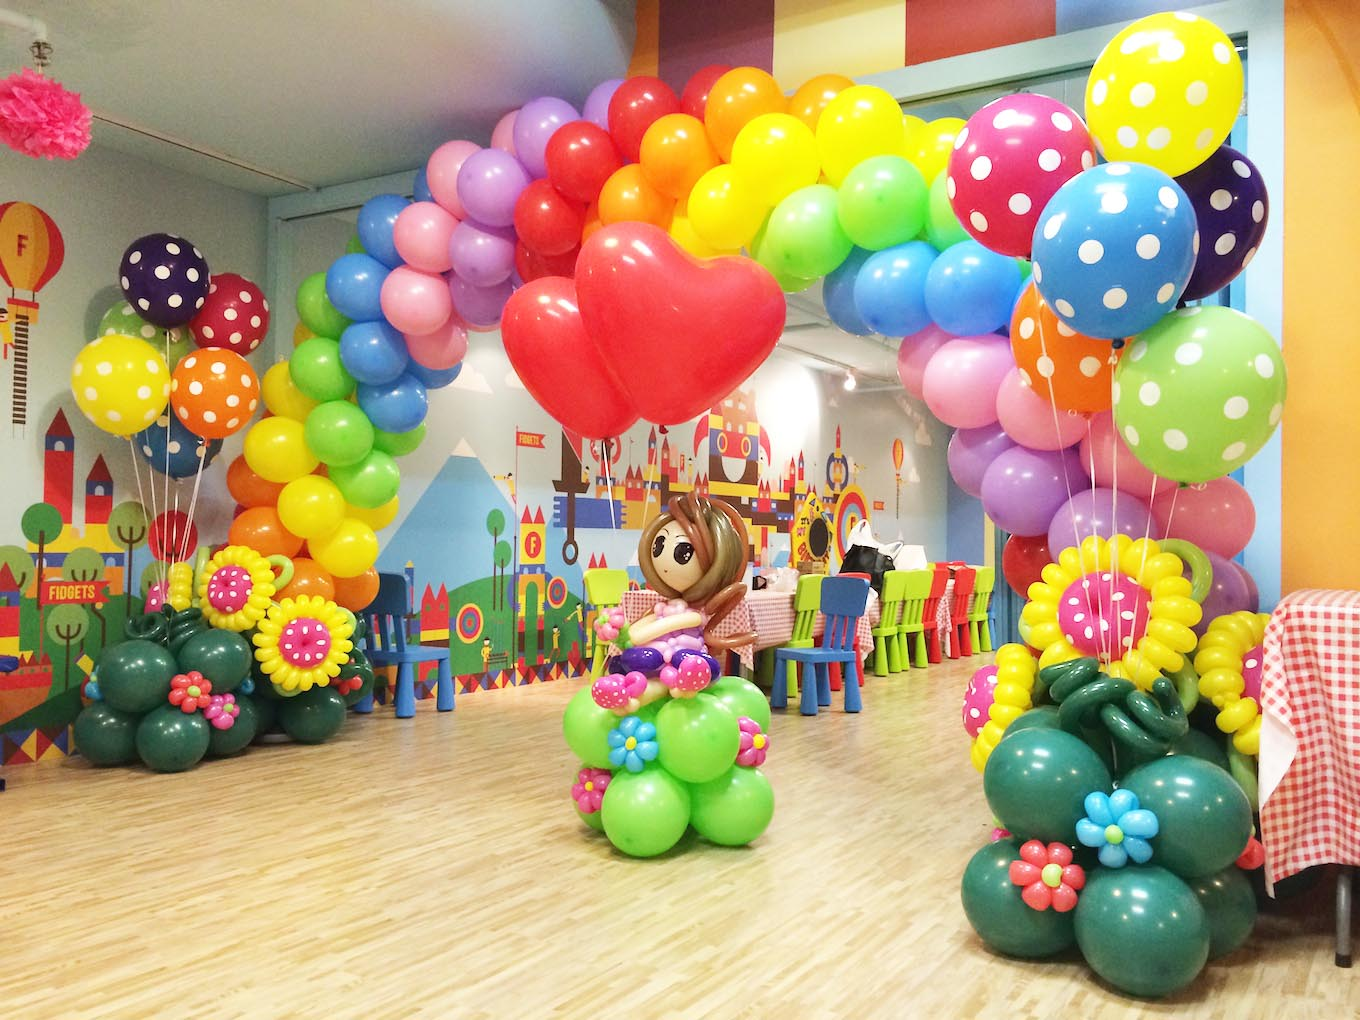 House Planner Online Cheapest Balloon Decorations For Birthday Party Party